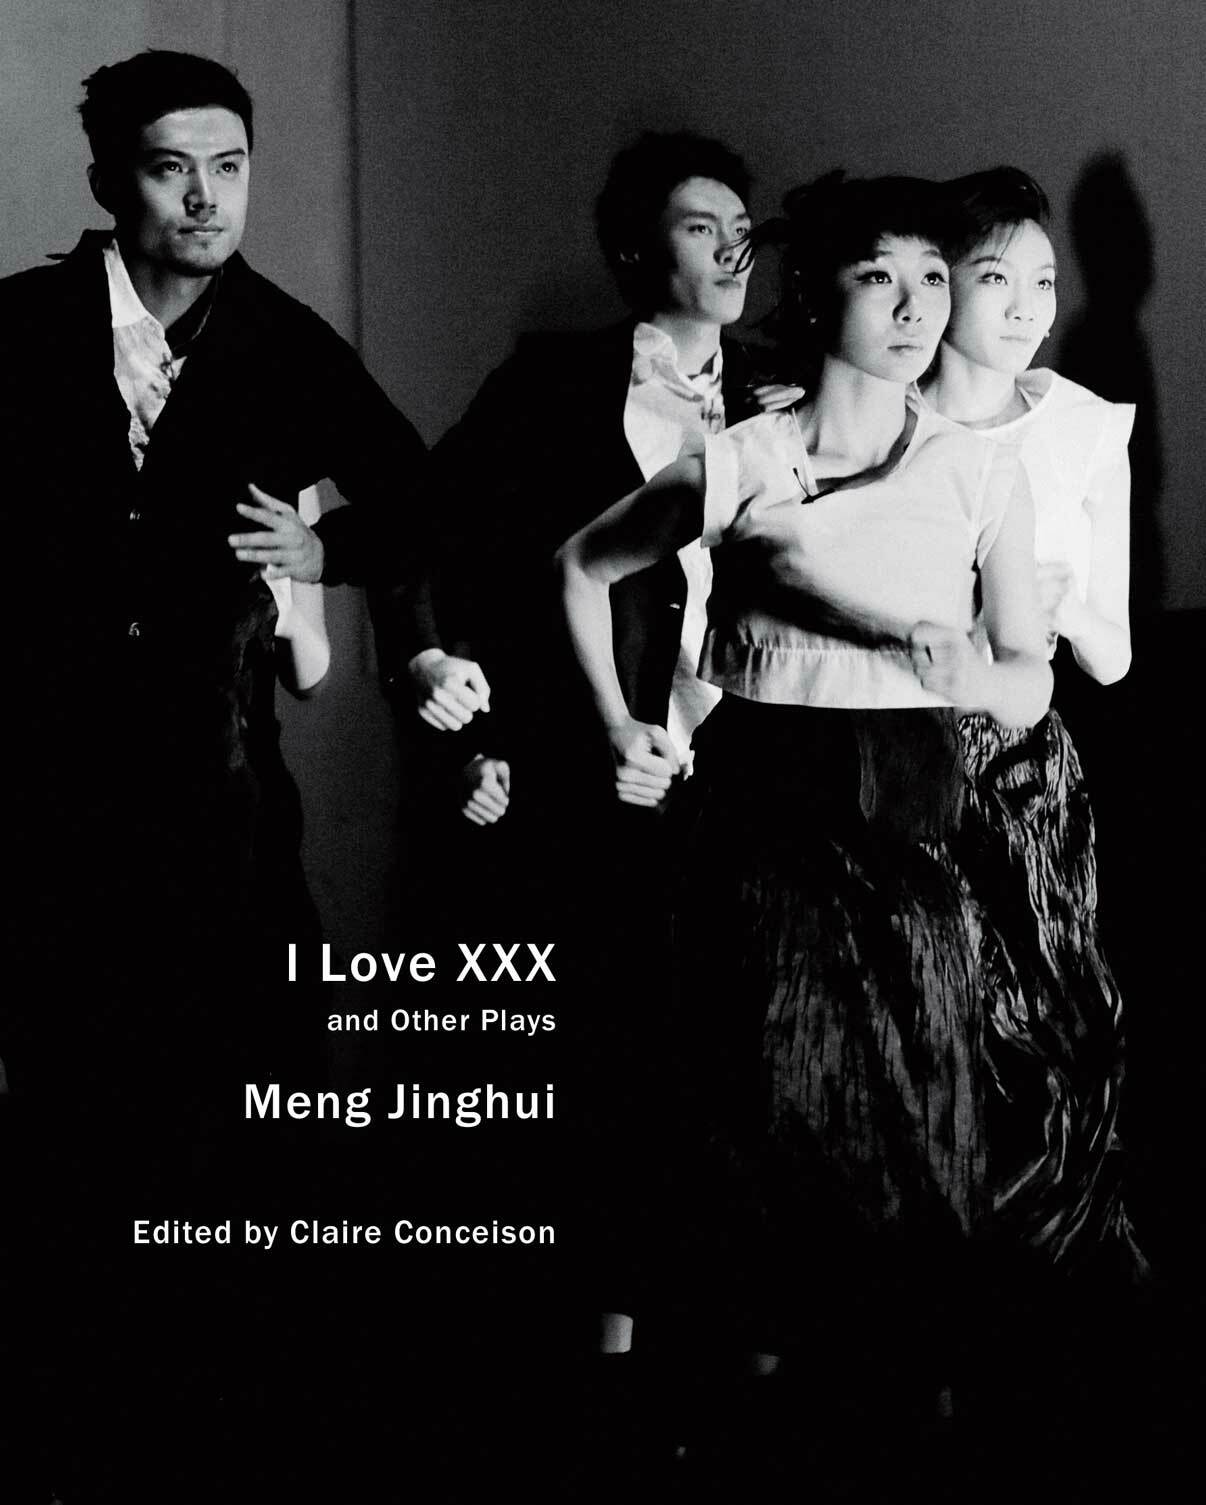 I Love XXX: and Other Plays by Meng Jinghui   Seagull Books